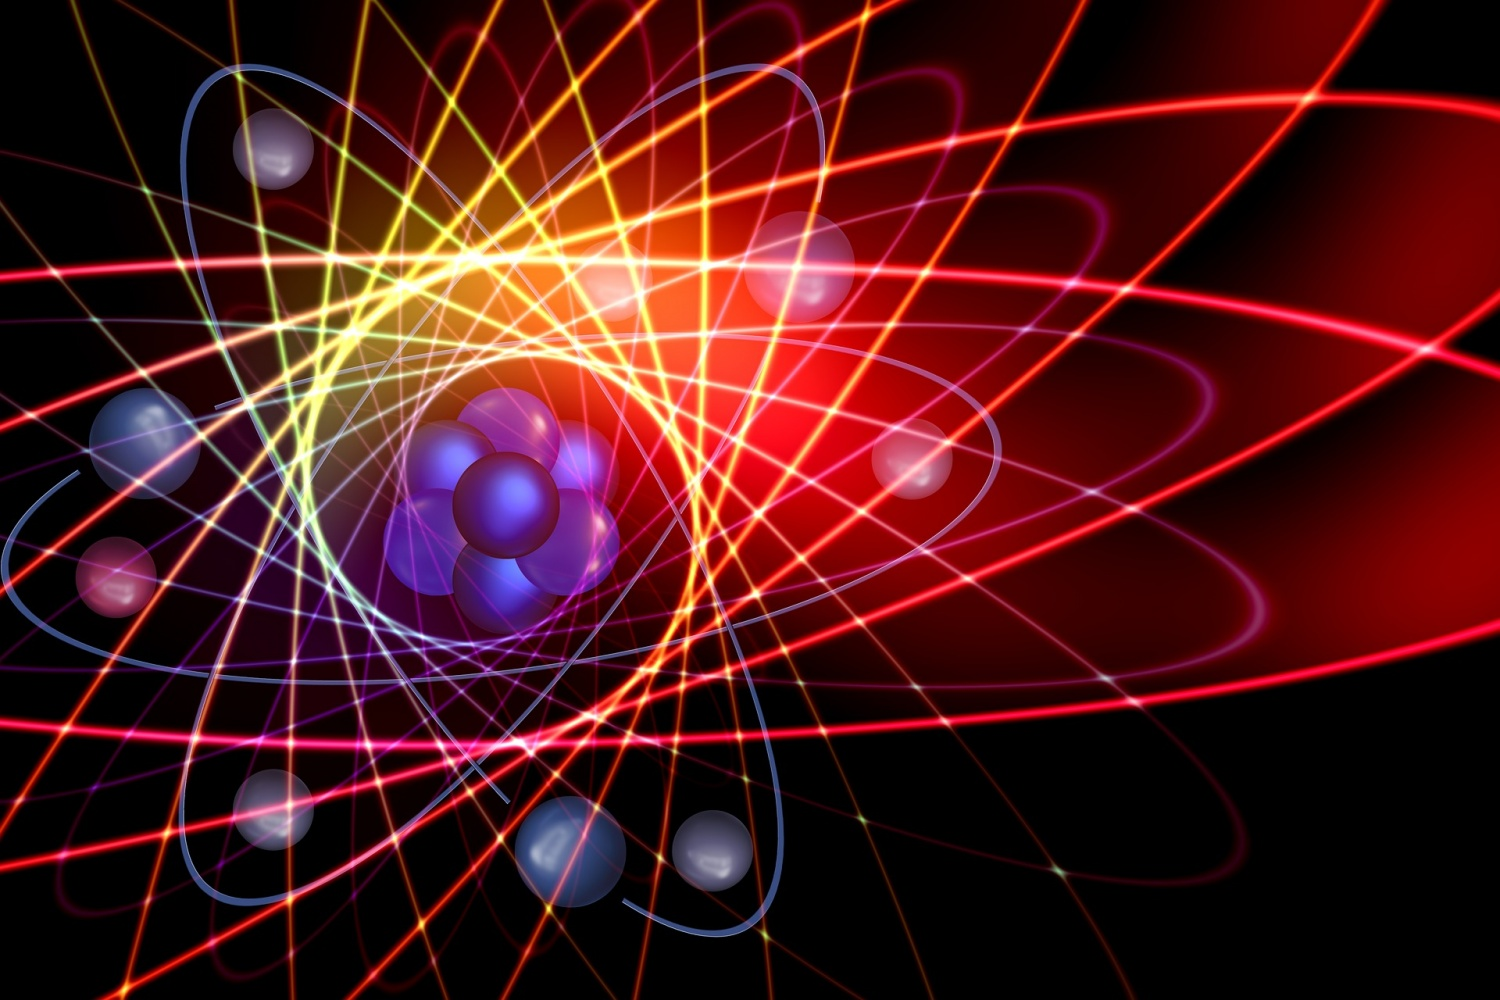 second law of thermodynamics quantum physics arrow of time